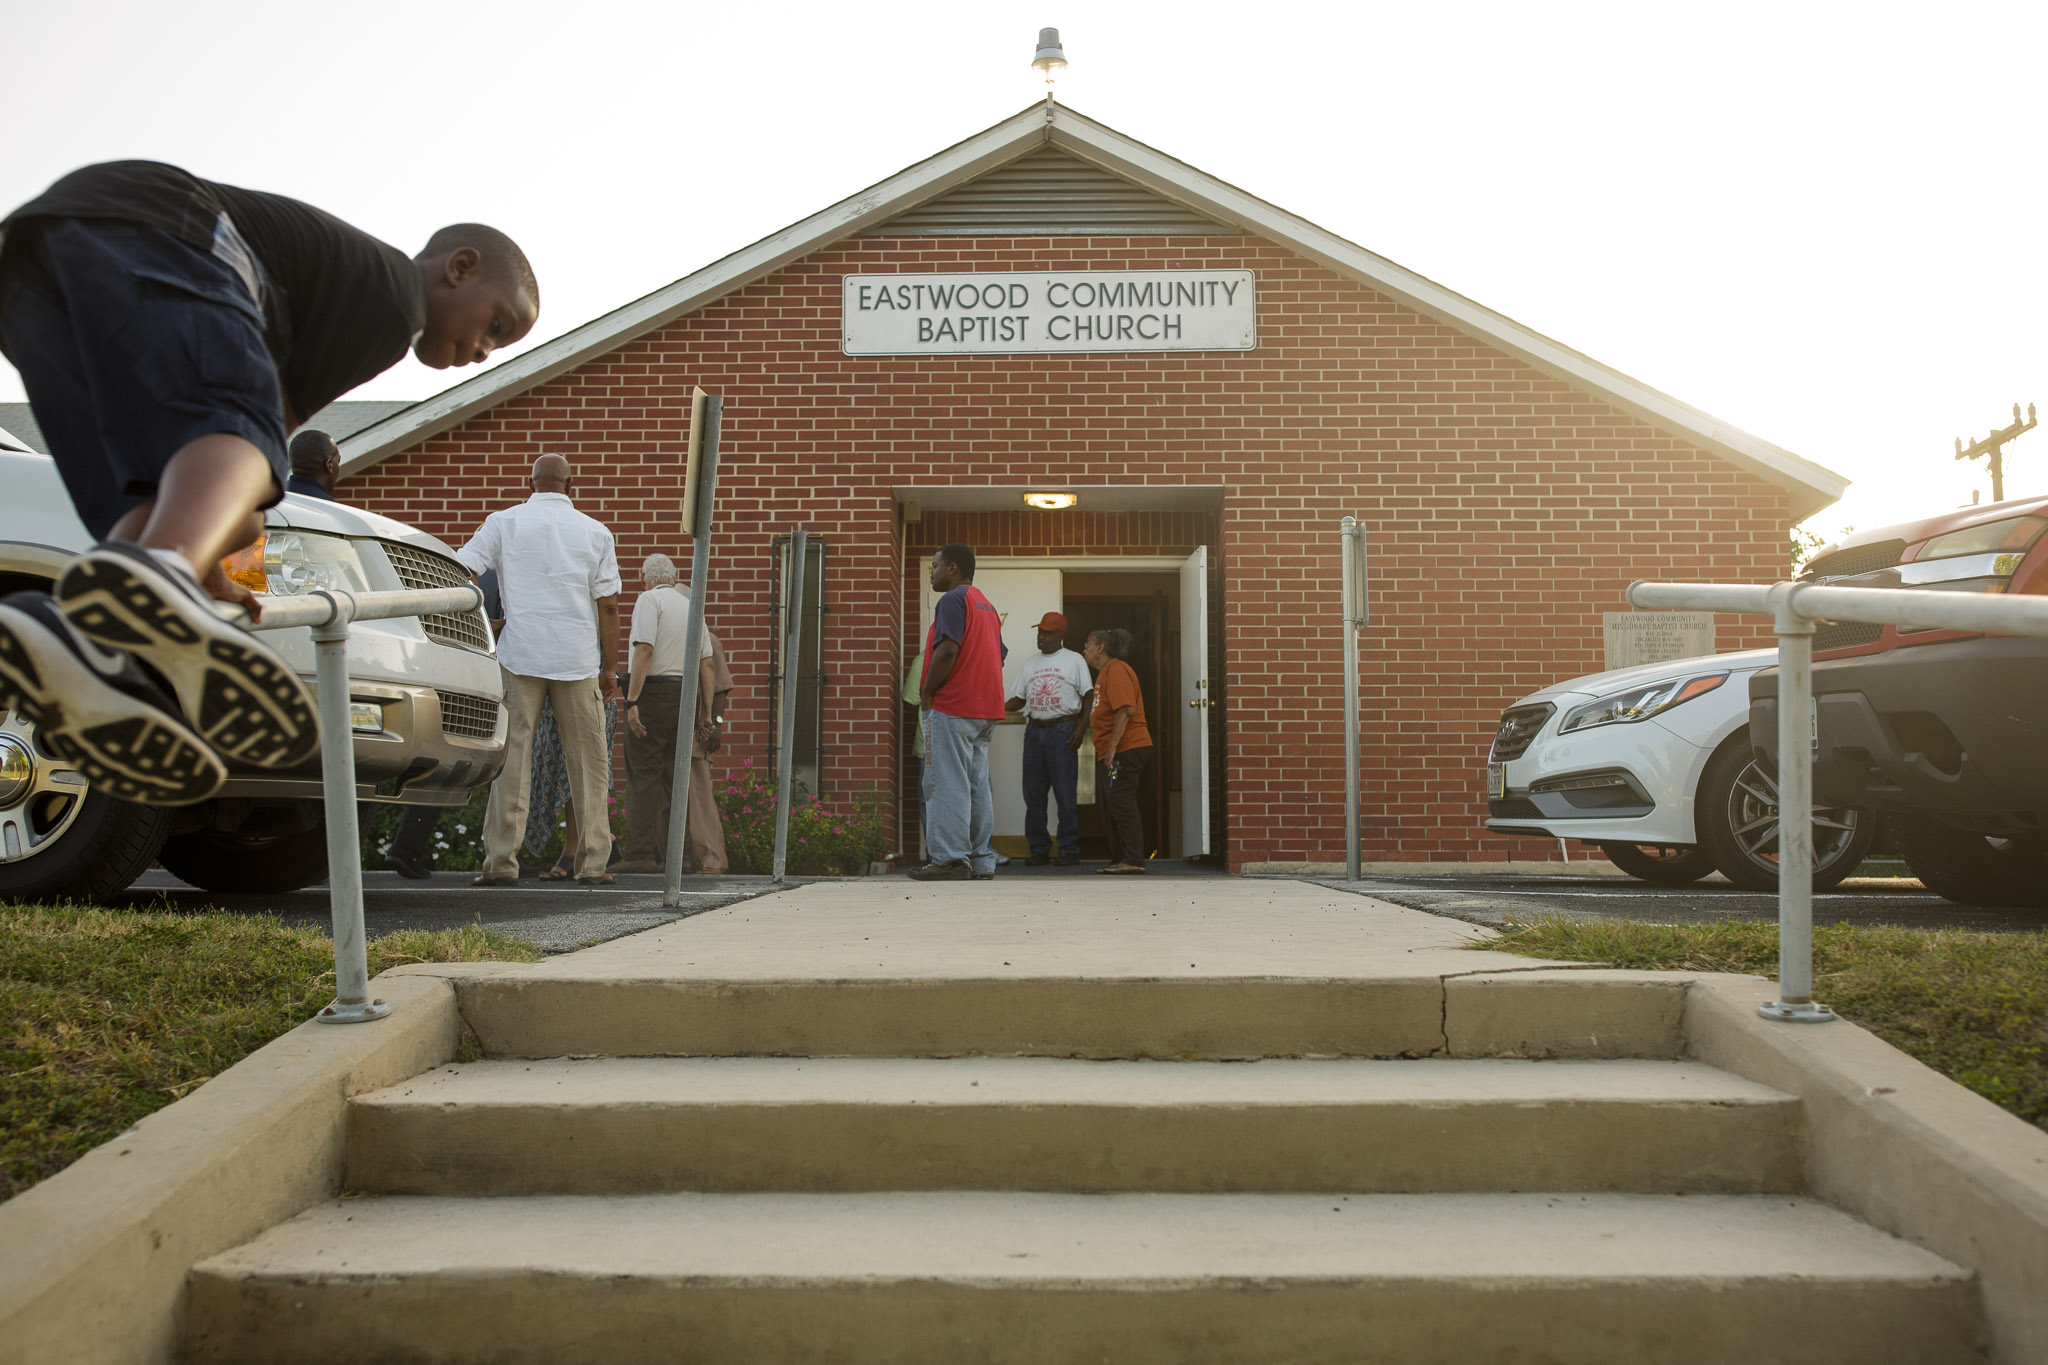 Following the community input meeting, residents of the area congregate outside Eastwood Community Baptist Church along Martin Luther King Drive. Photo by Scott Ball.